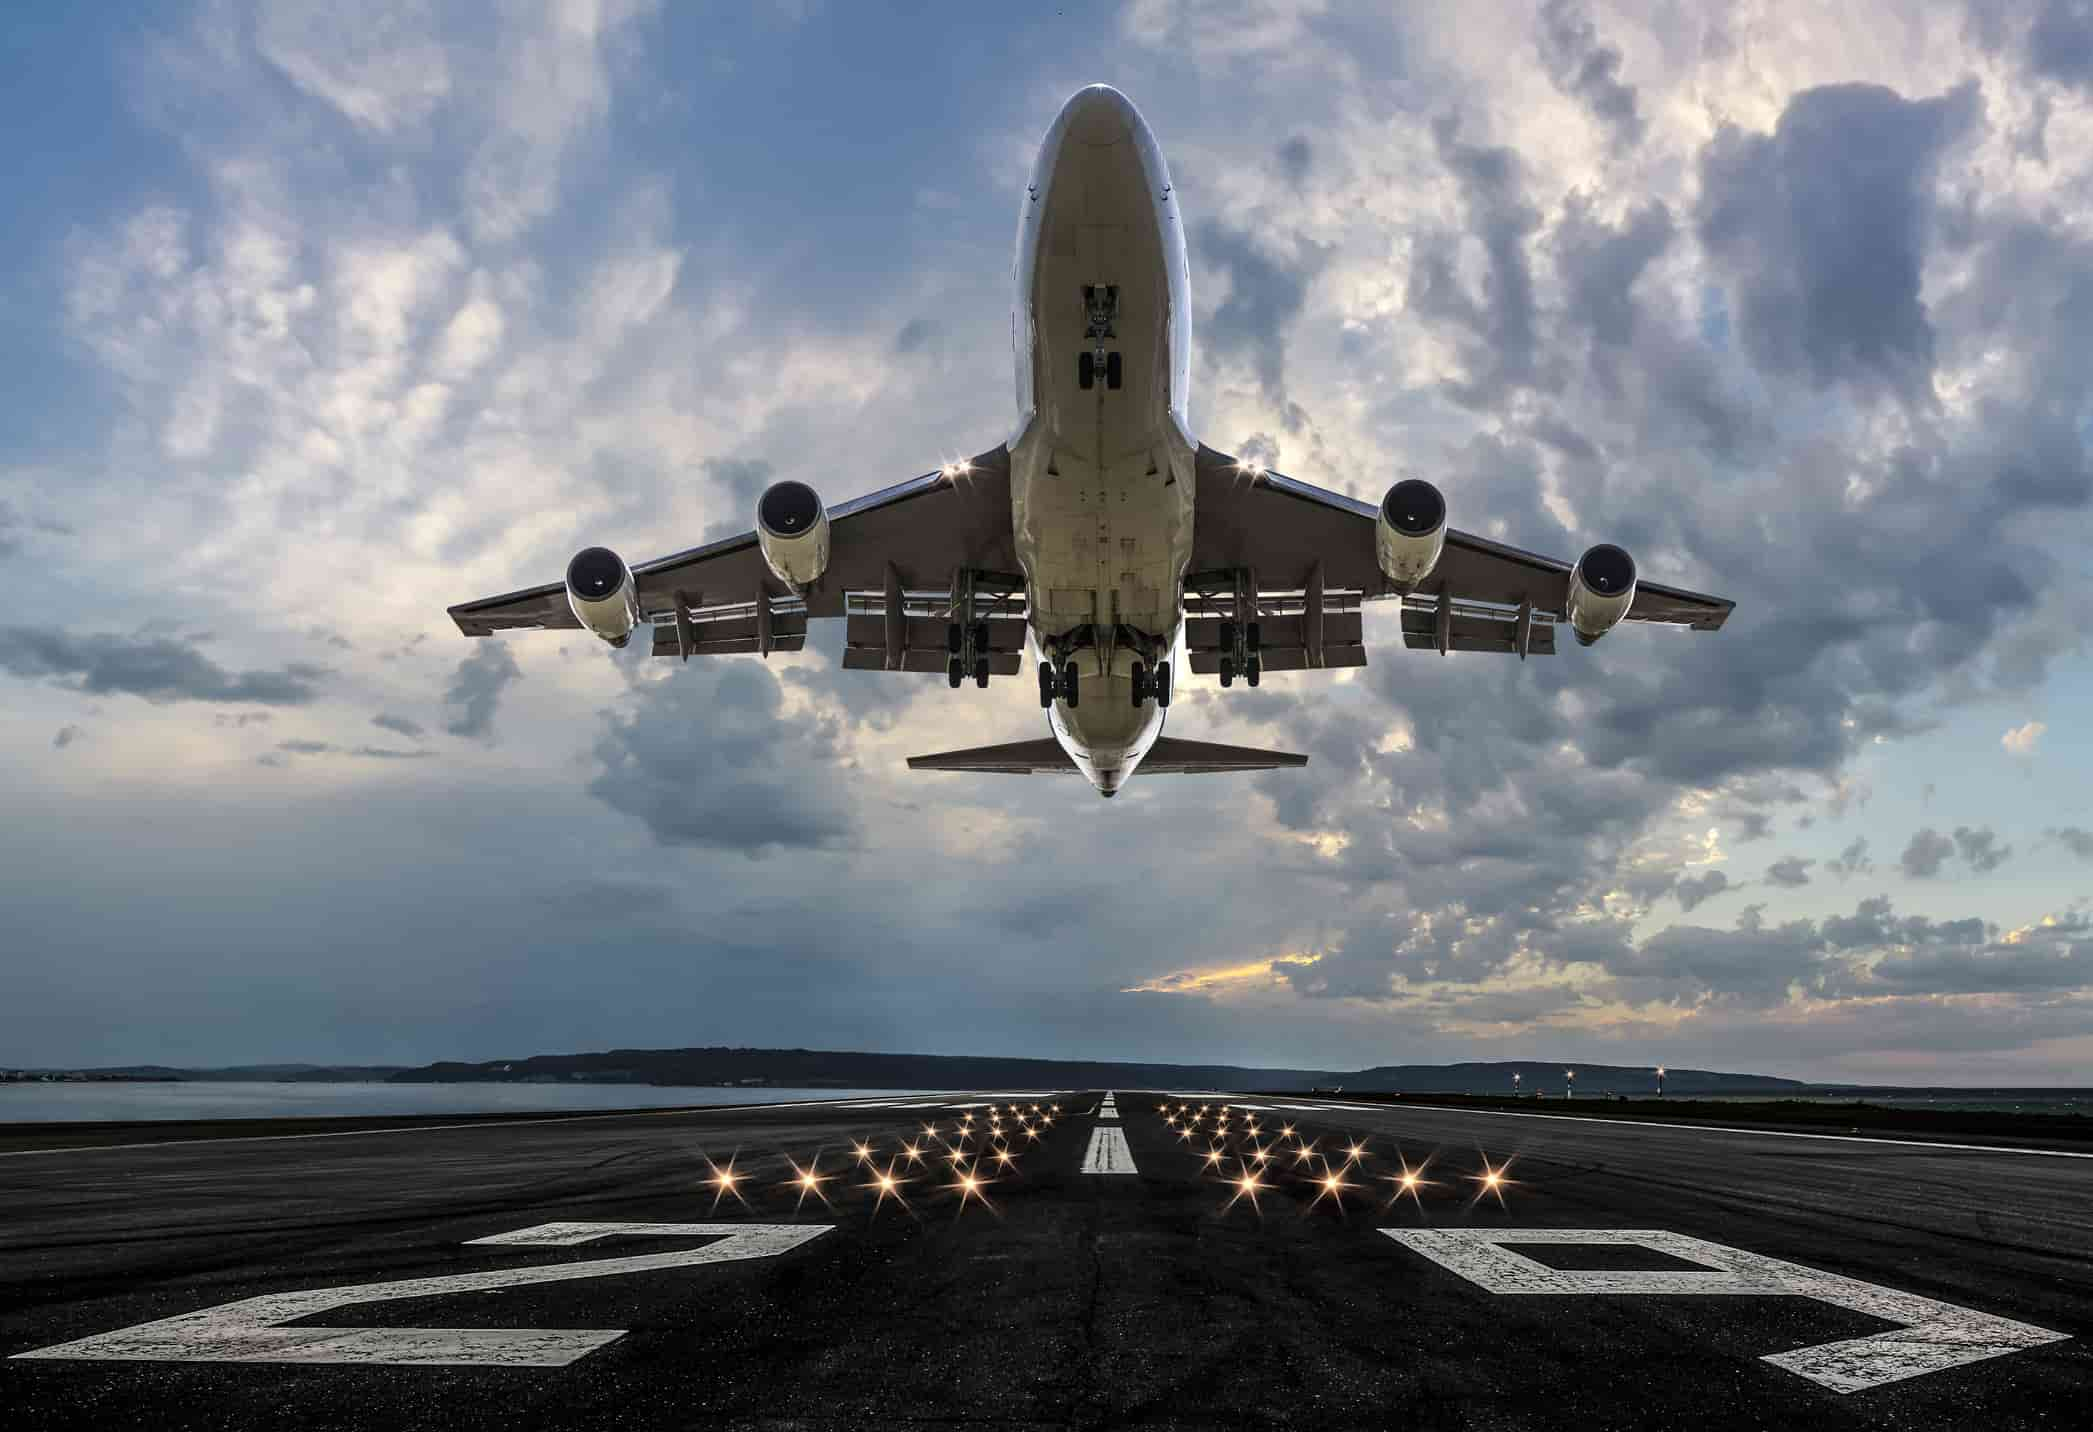 an airplane taking off from the airport